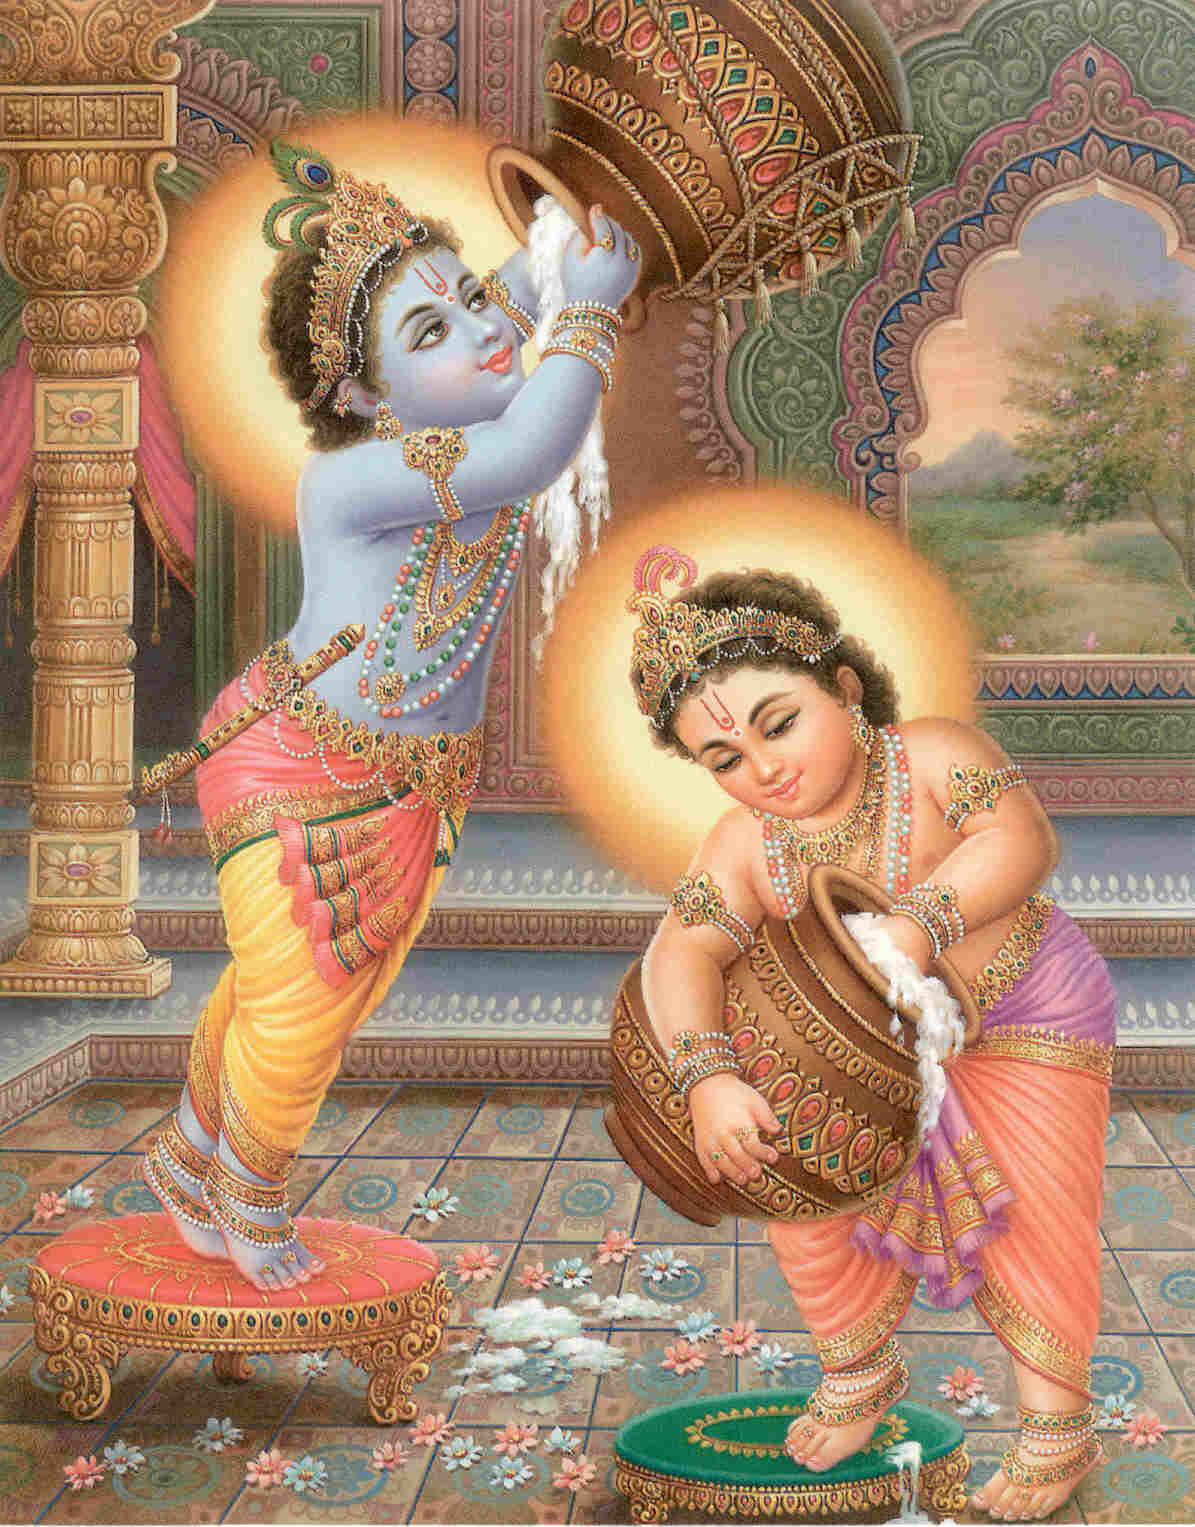 Gambar Tuhan Hindu http://karthik-btech.blogspot.com/2010/09/download-hindu-god-krishna-wallpapers.html